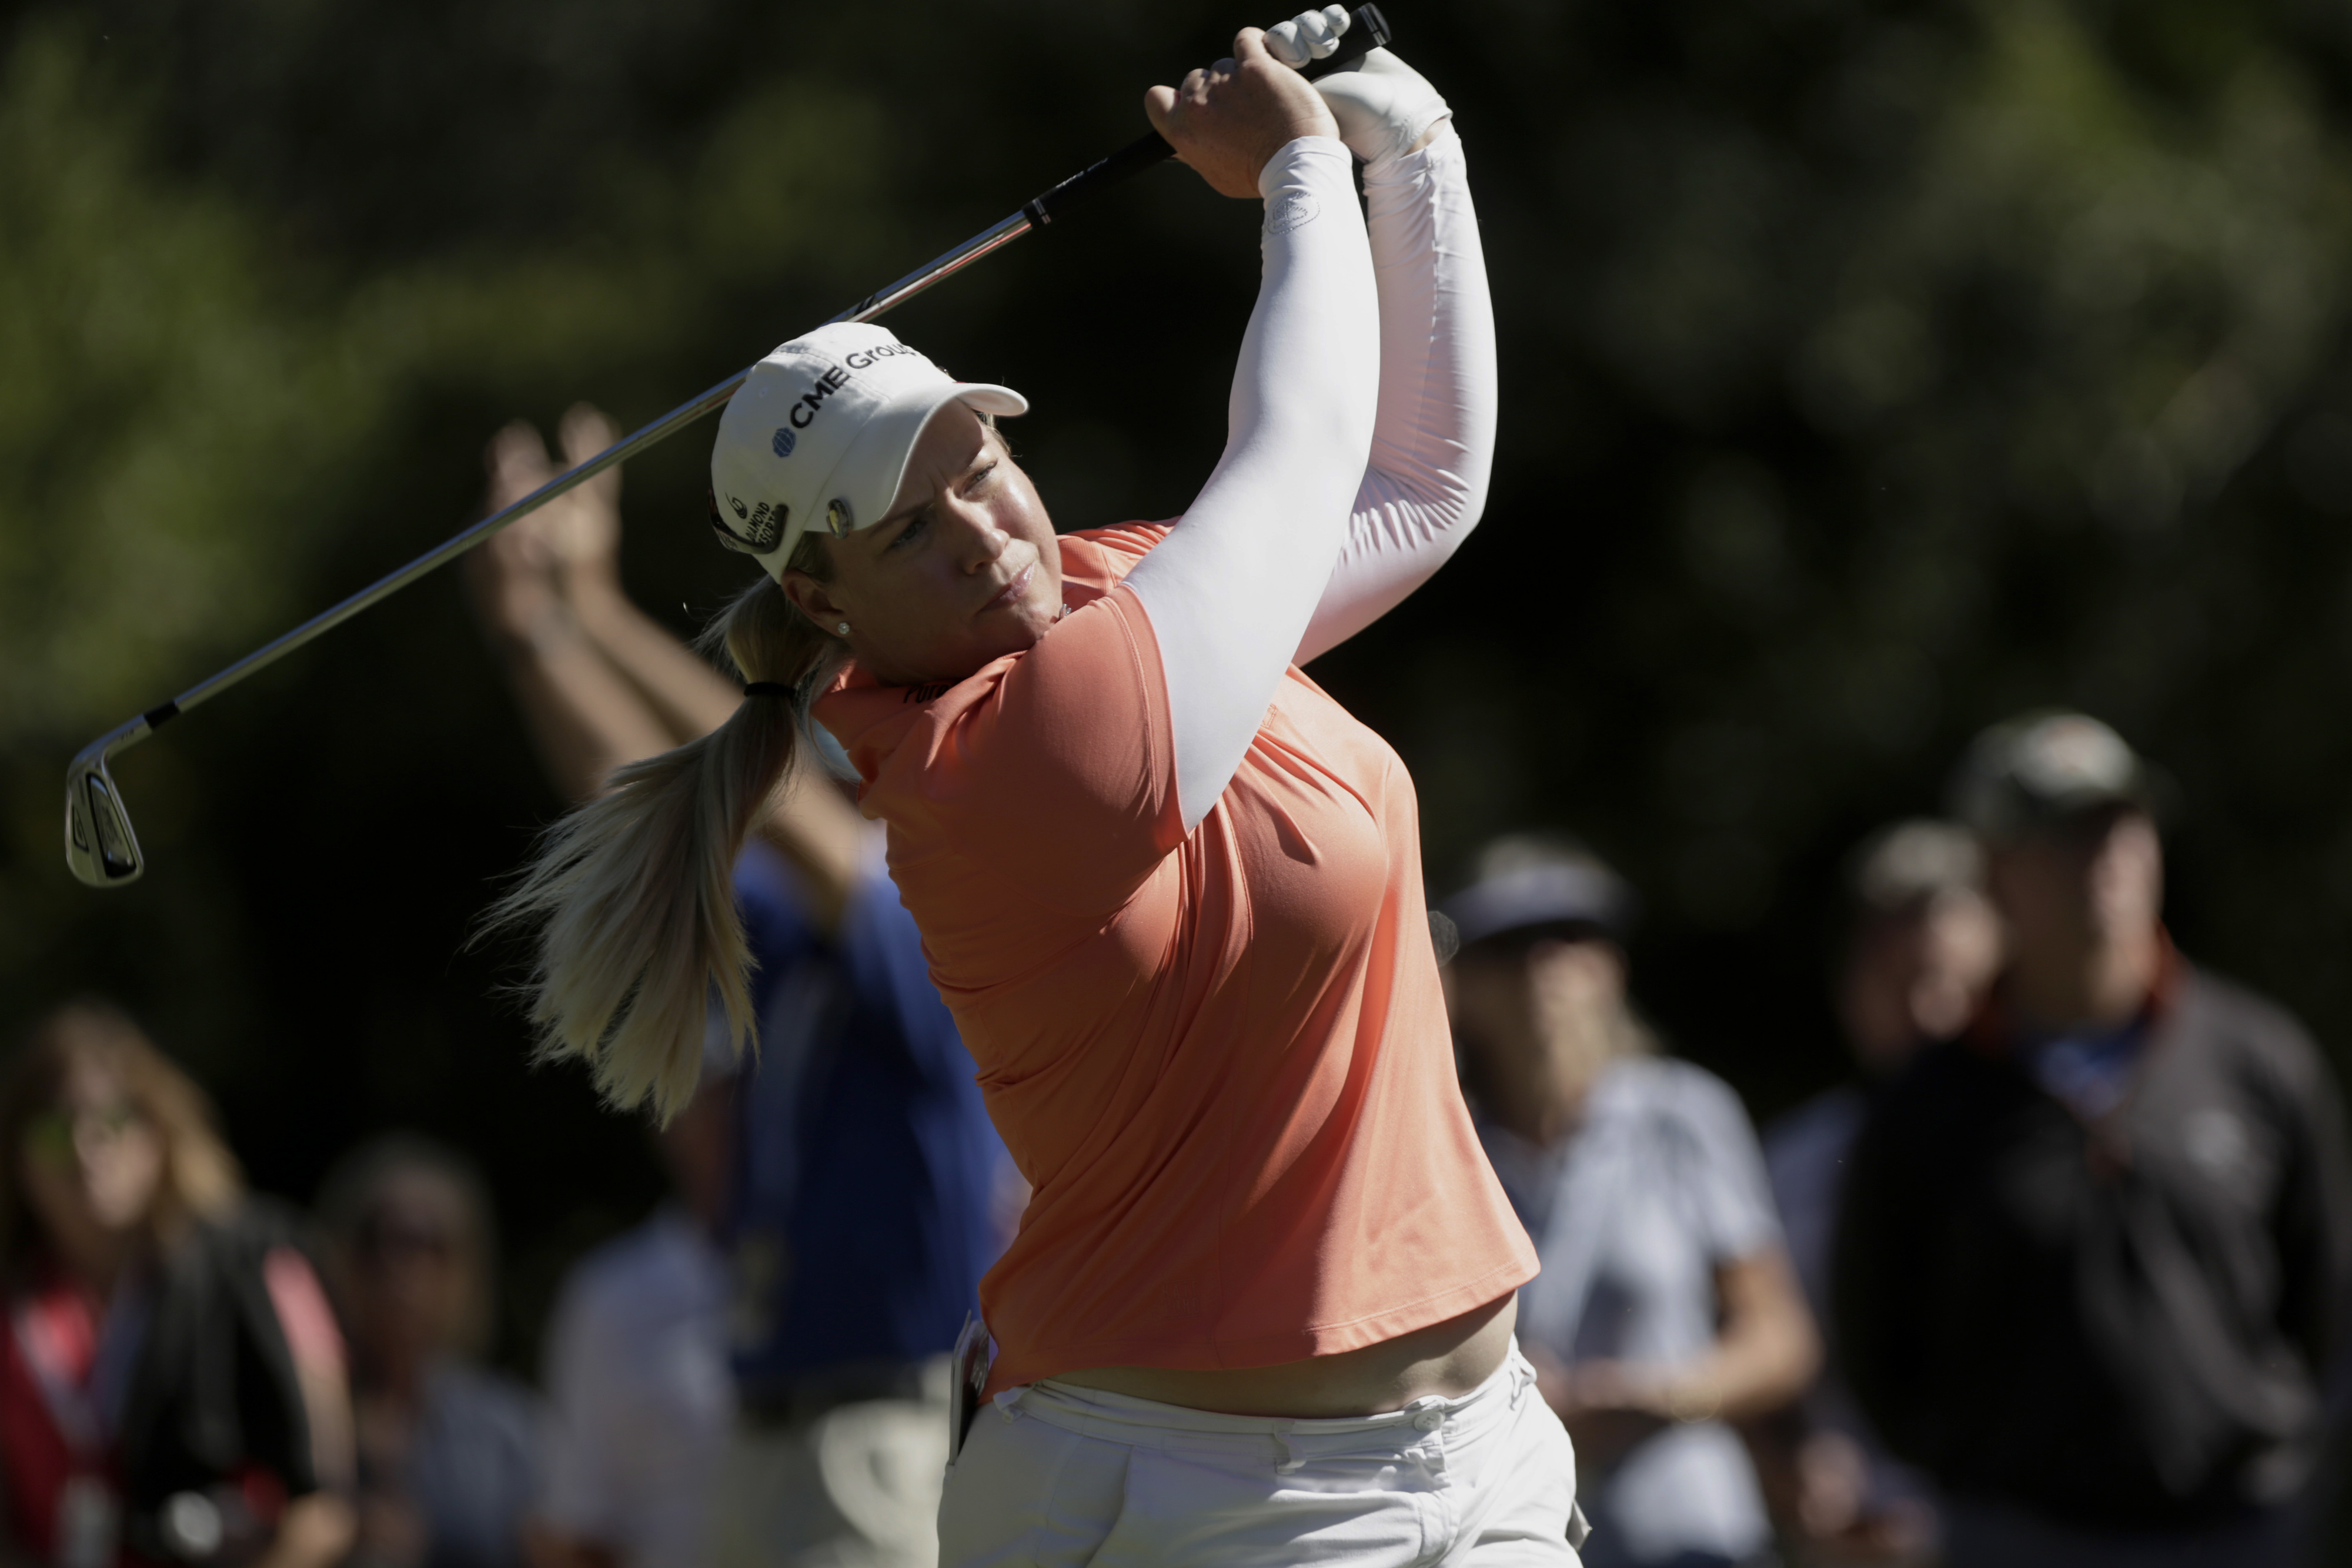 Brittany Lincicome, of Seminole, Fla., tees off during the CME Group Tour Championship golf tournament in Naples, Fla., Sunday, Nov. 20, 2016. (Dorothy Edwards/Naples Daily News via AP)